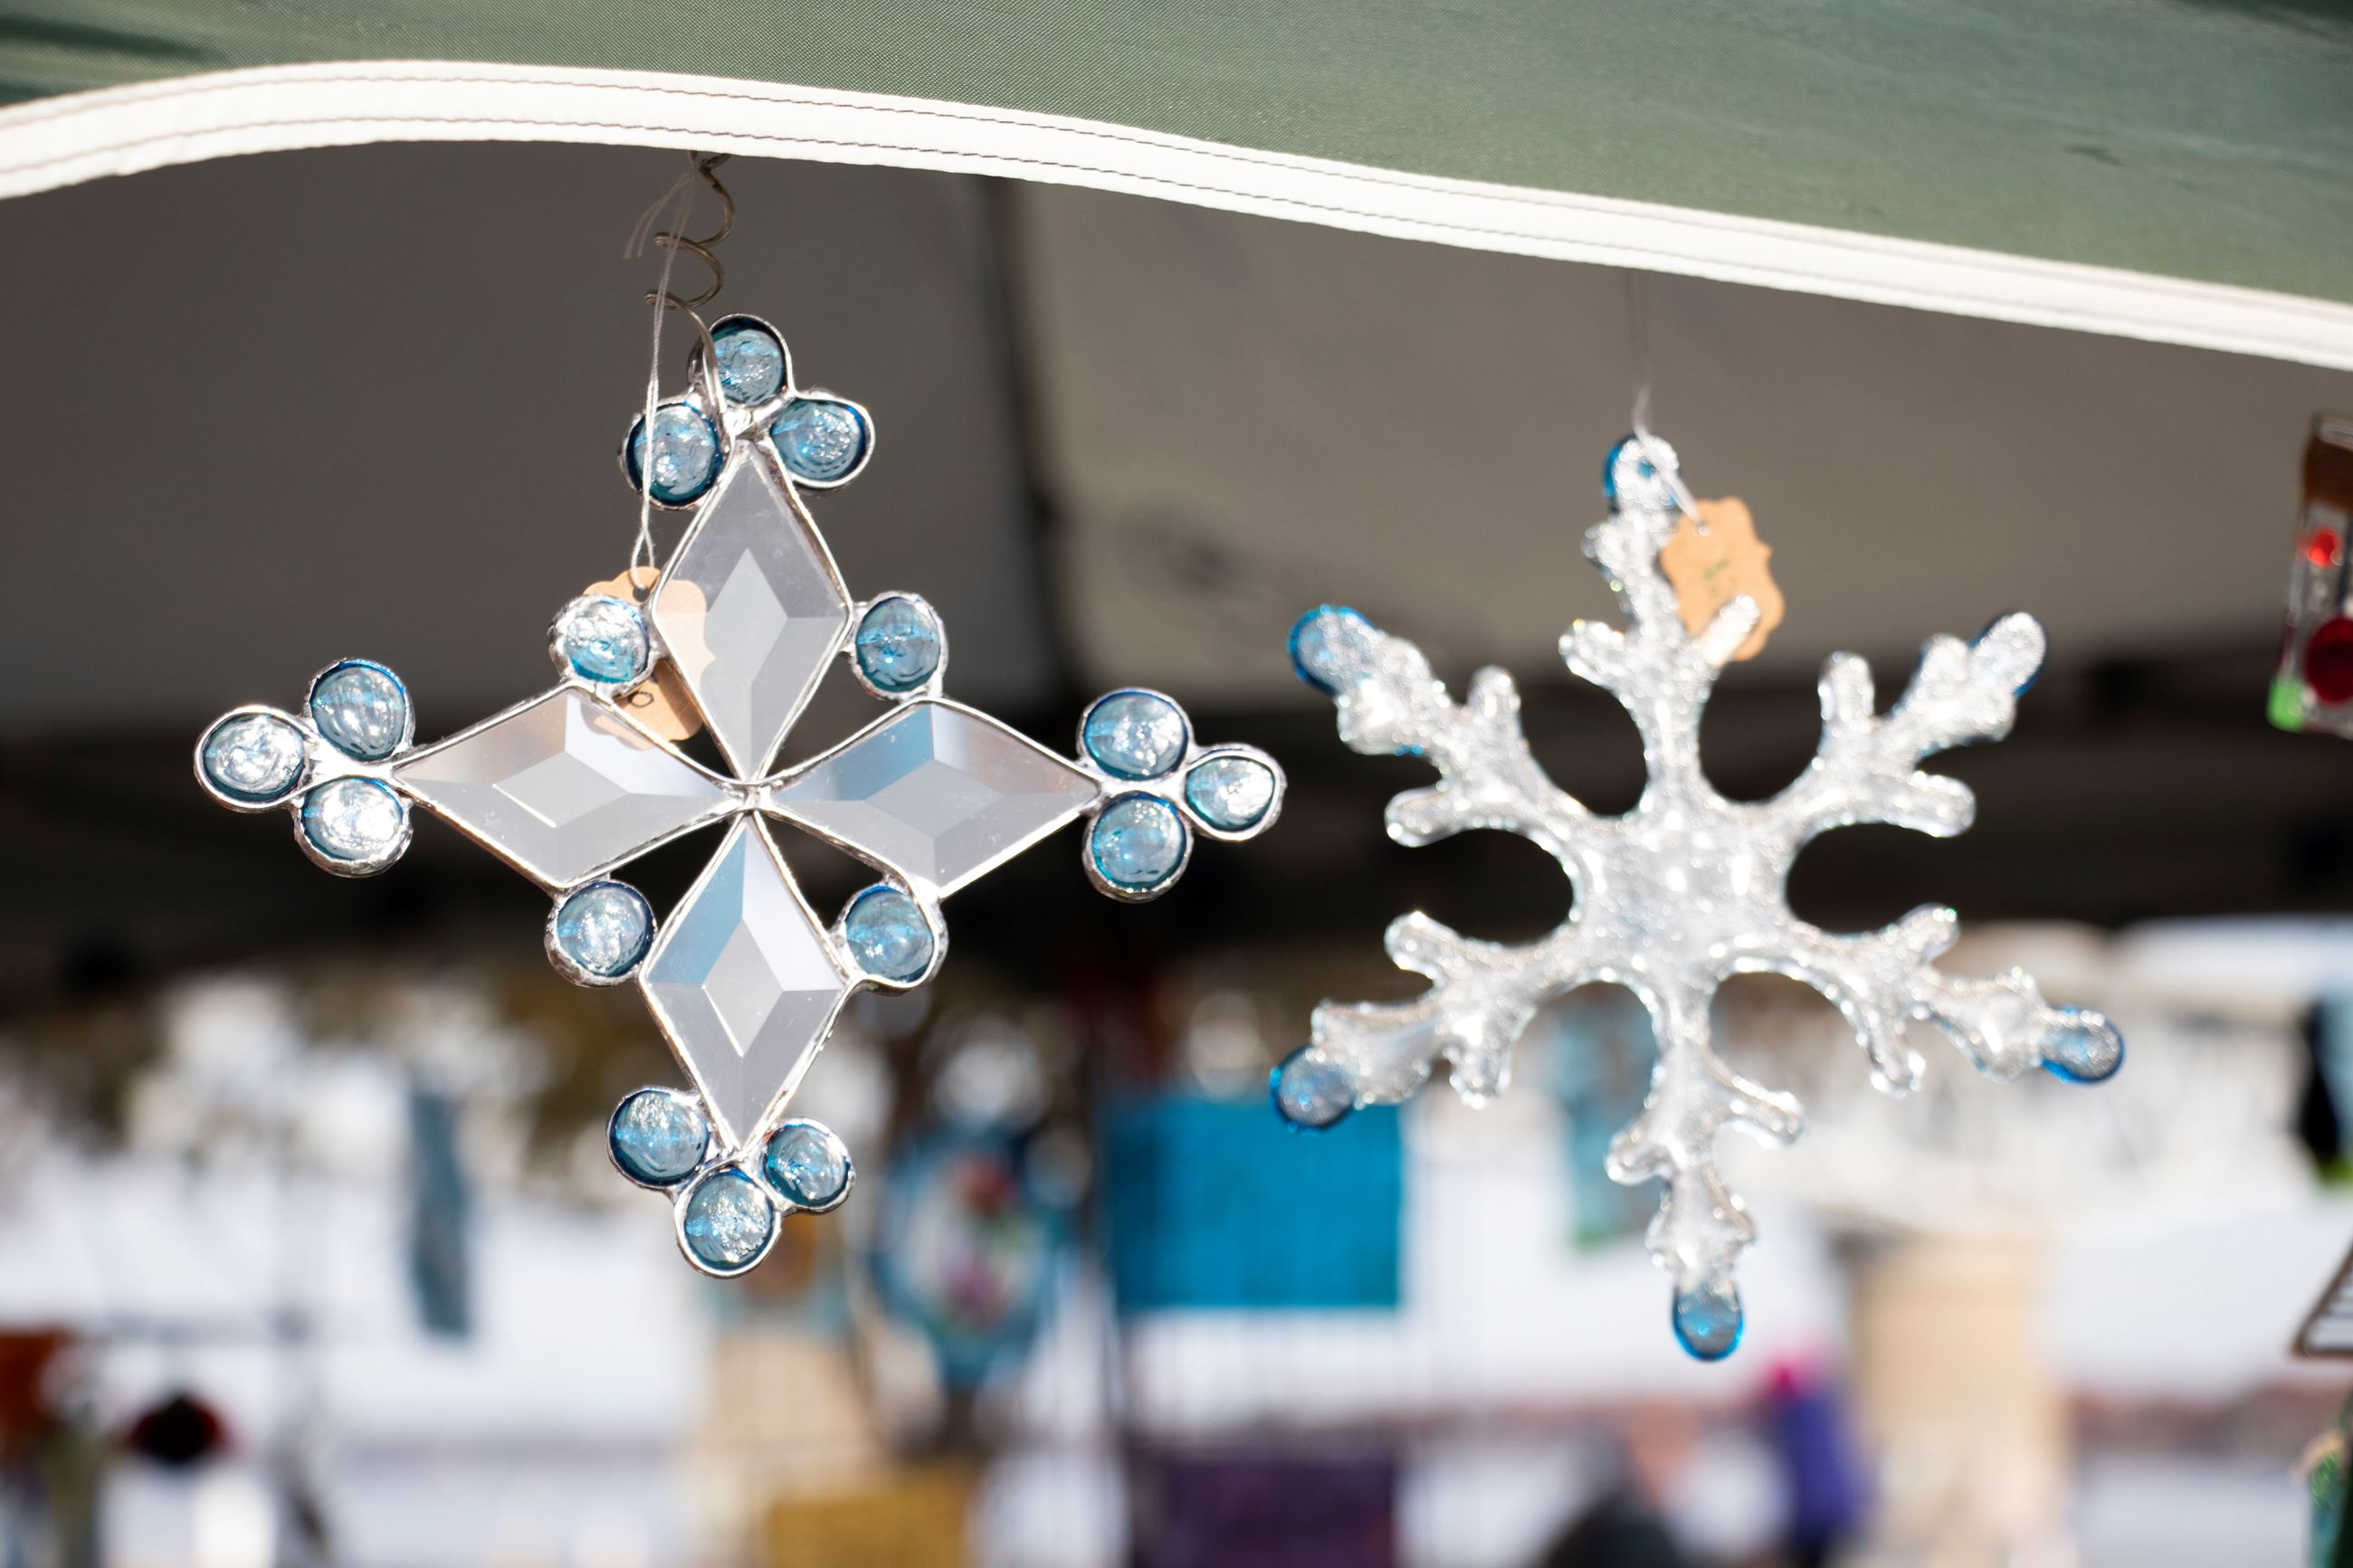 Stained Glass Snowflakes created by market artist Barbara Meier